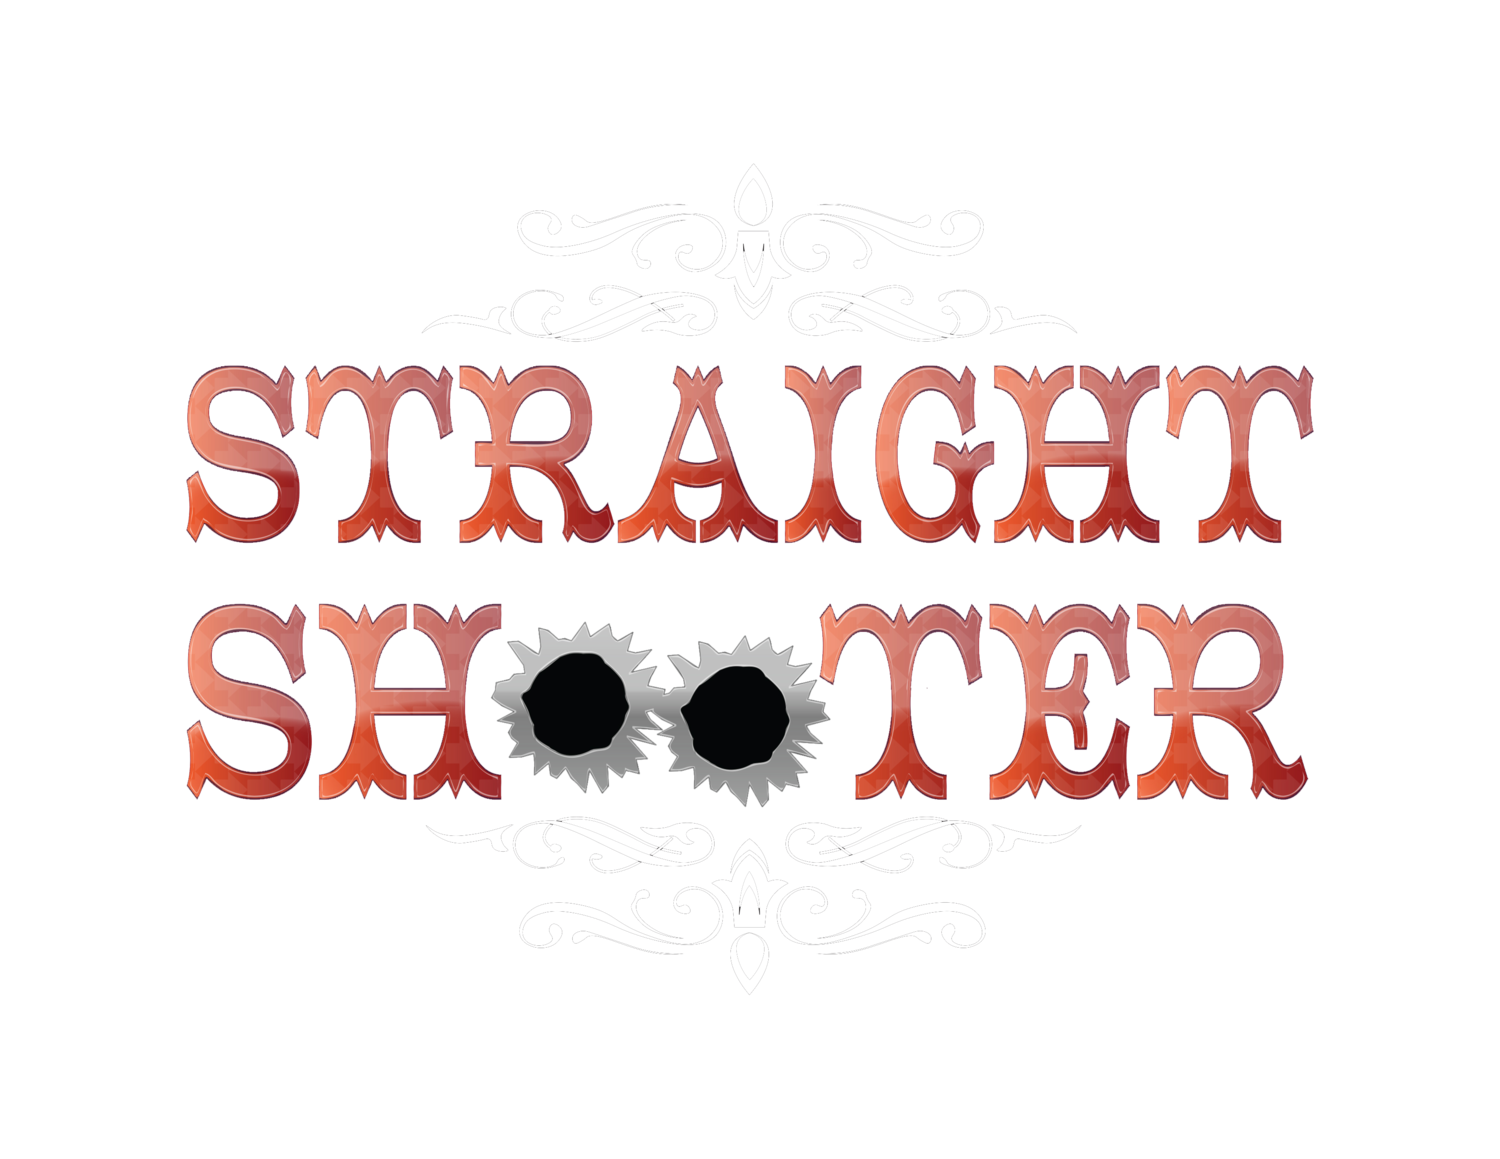 Straight Shooter Band